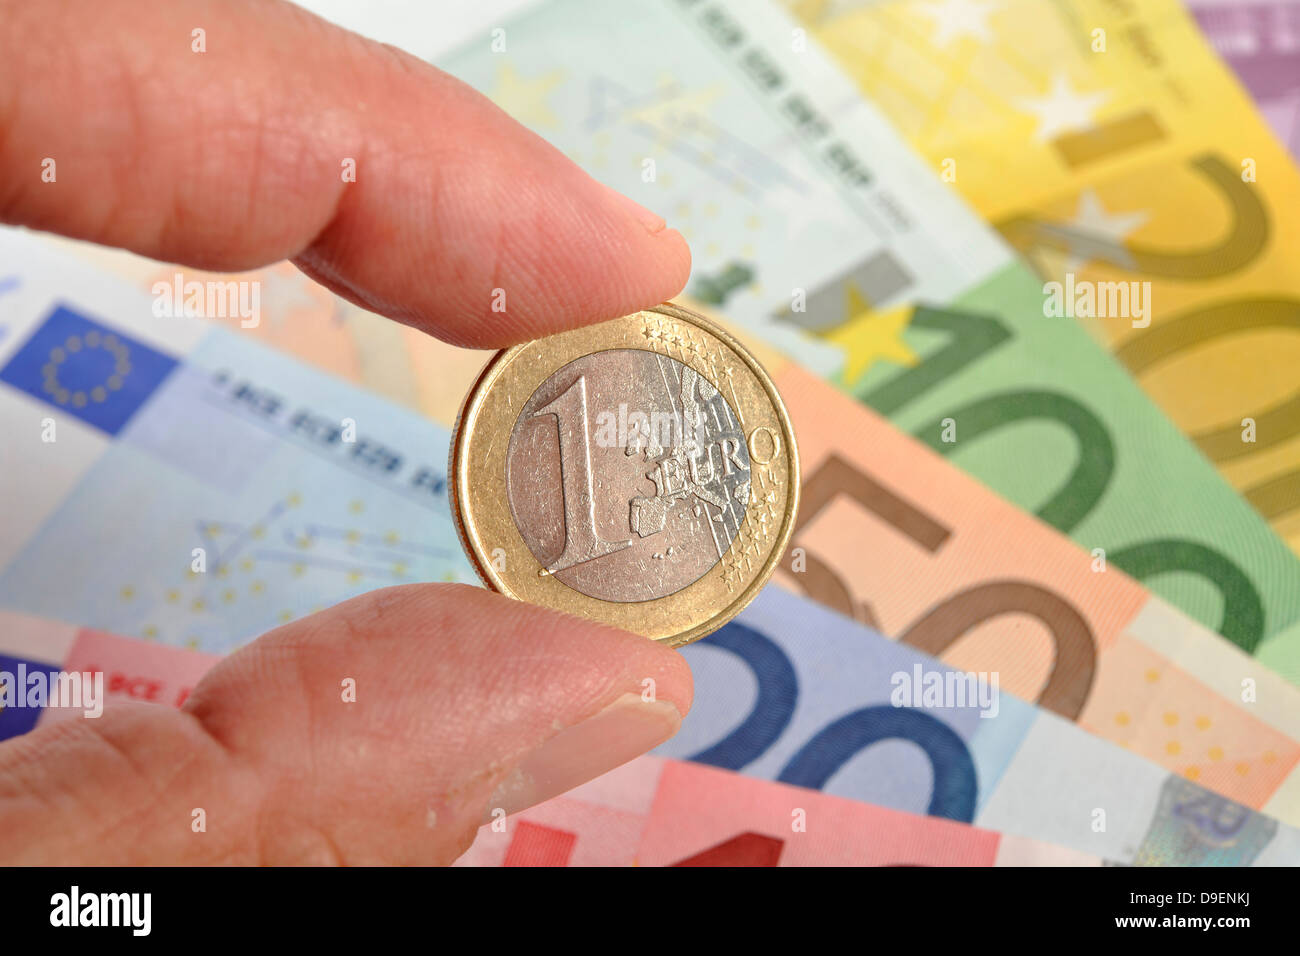 various euro-bank notes, bank notes, coins, fields, 1-euro-coin between fingers - Stock Image